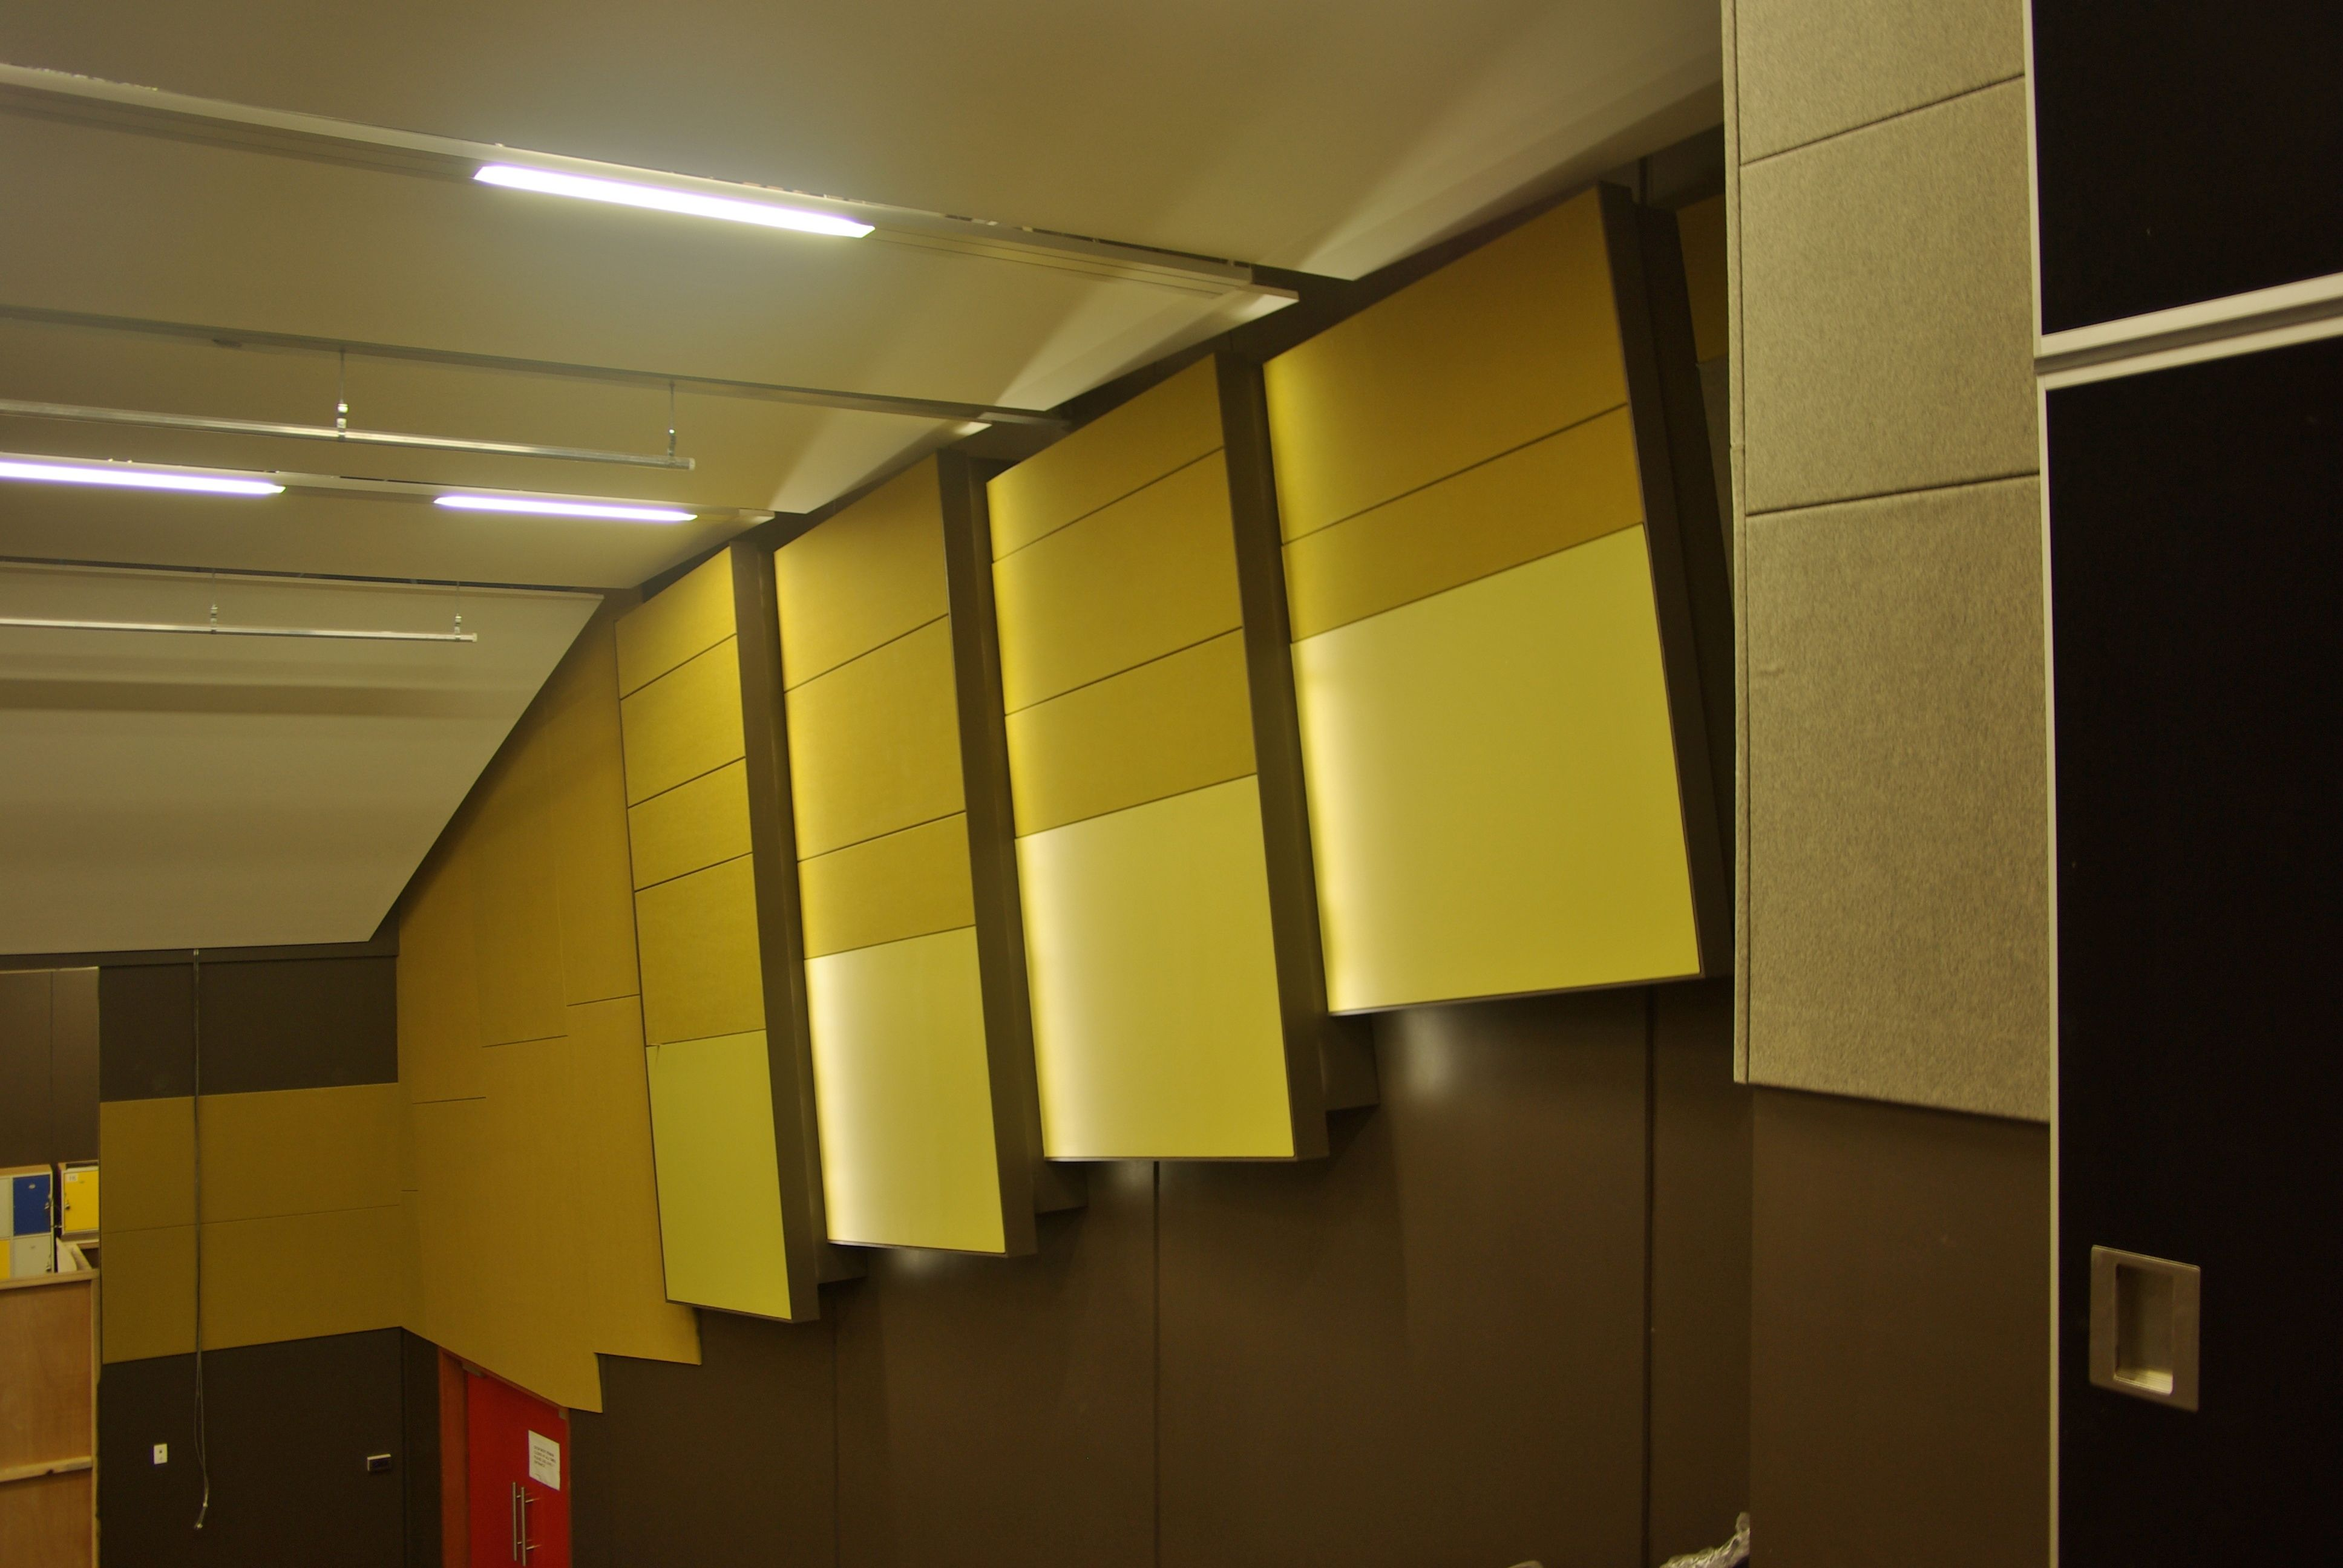 Acoustic Wall Panels In Auditorium - Sontext | Interior design-Walls ...